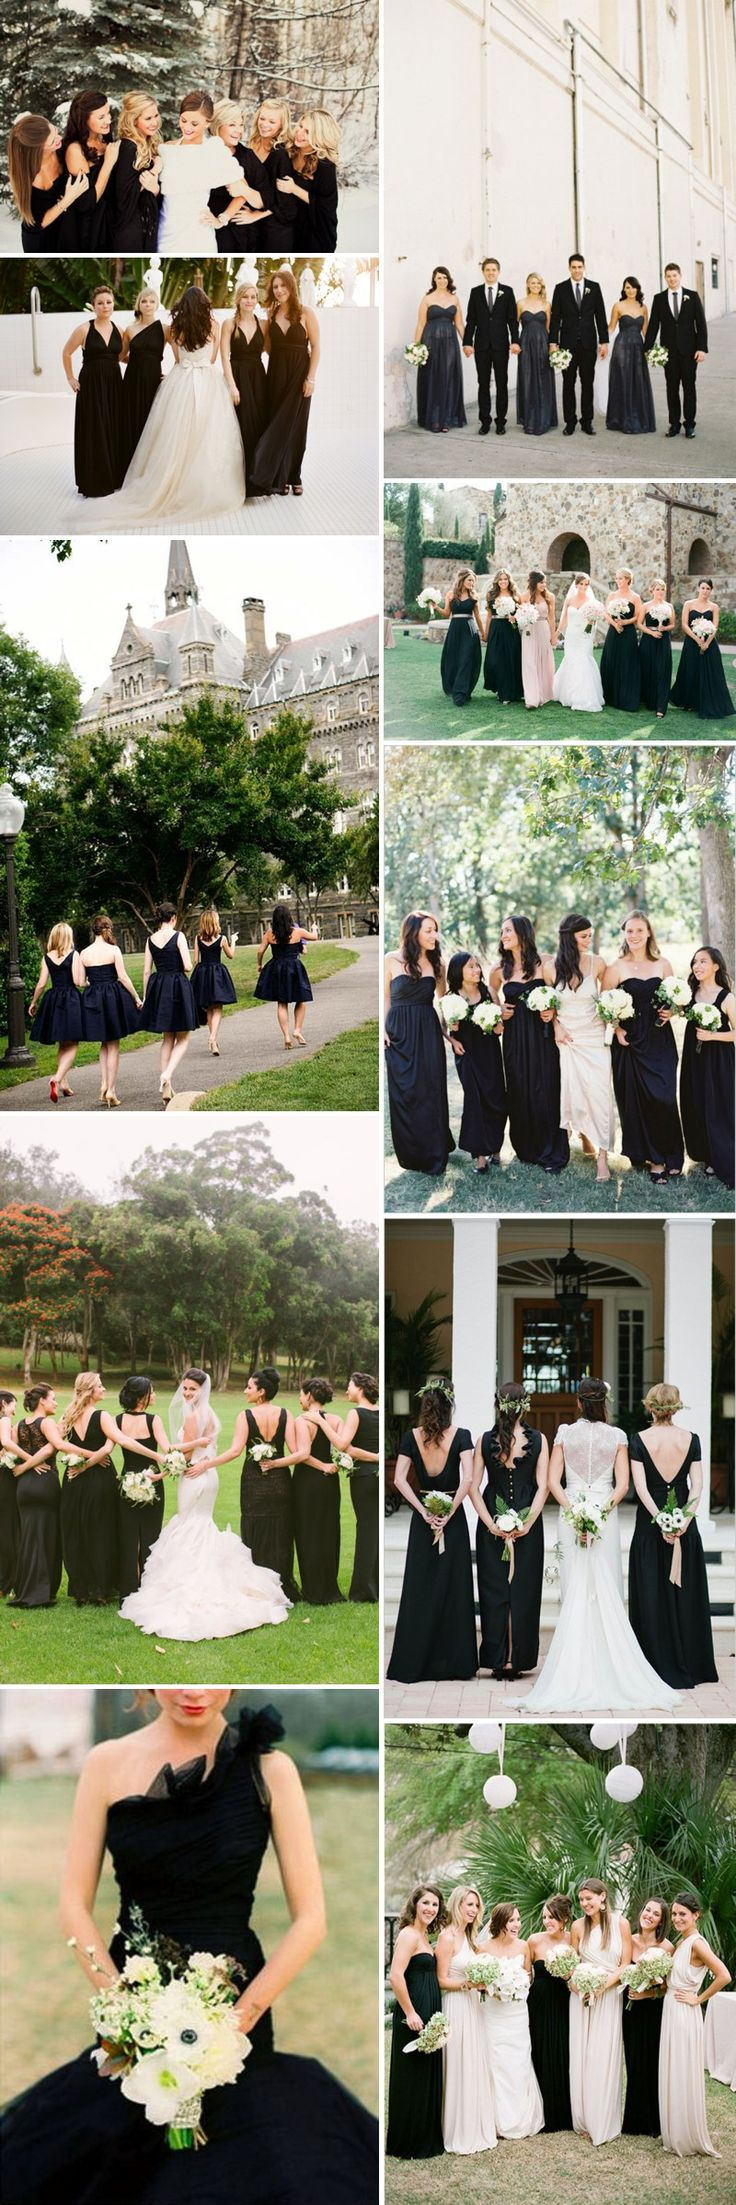 Four Beautiful Bridesmaid Trends. | http://www.rockmywedding.co.uk/four-beautiful-bridesmaid-trends/